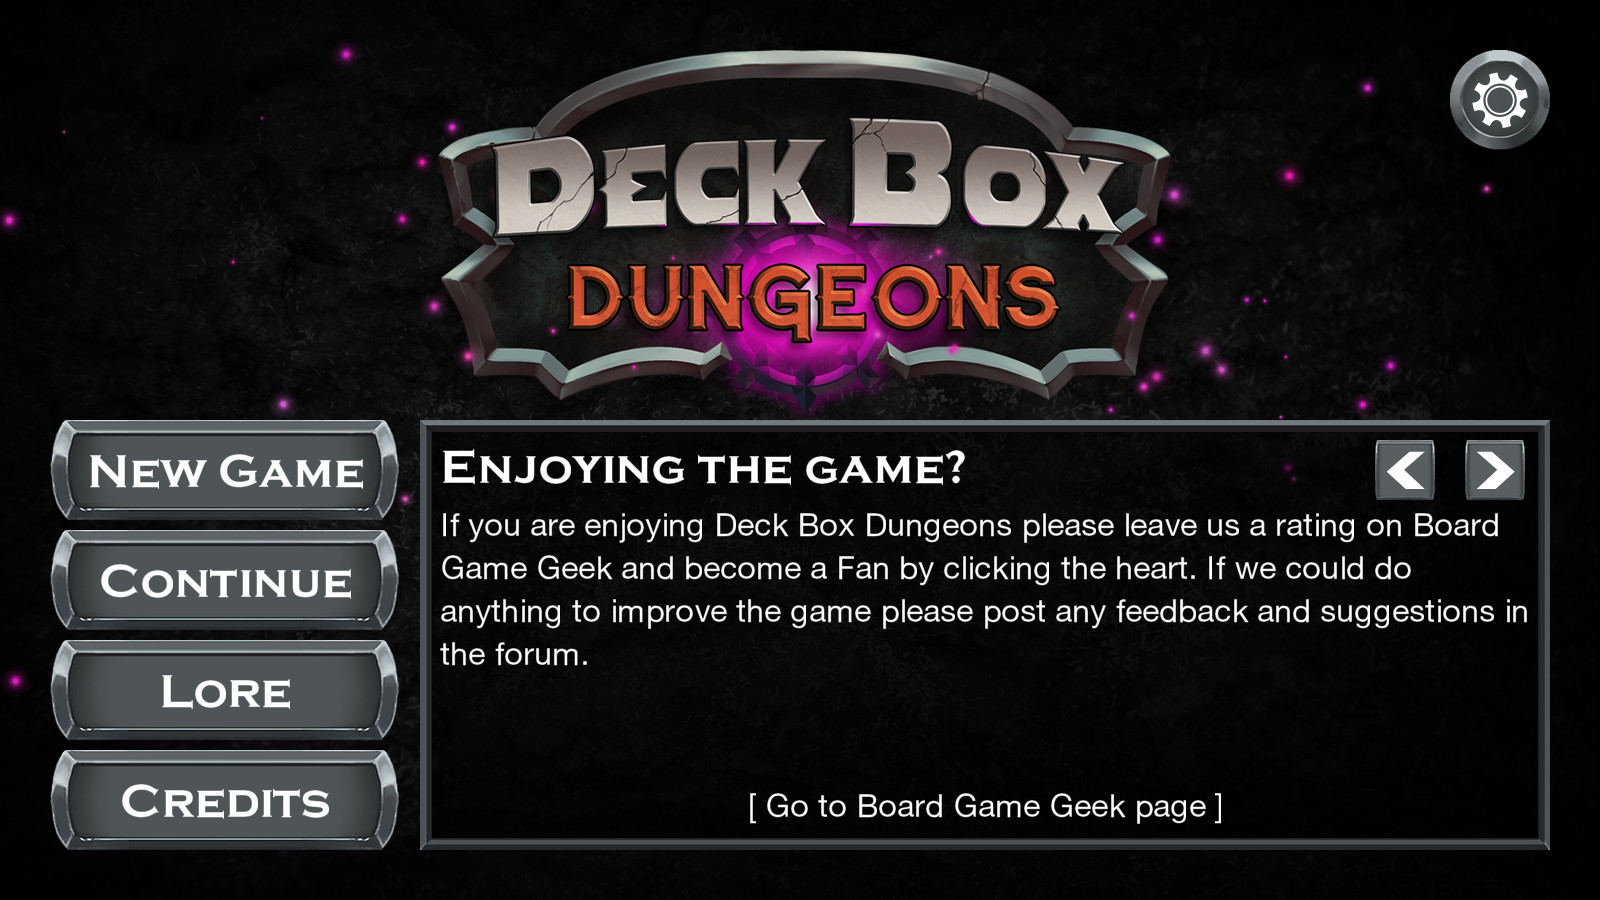 What's On Steam - Deck Box Dungeons